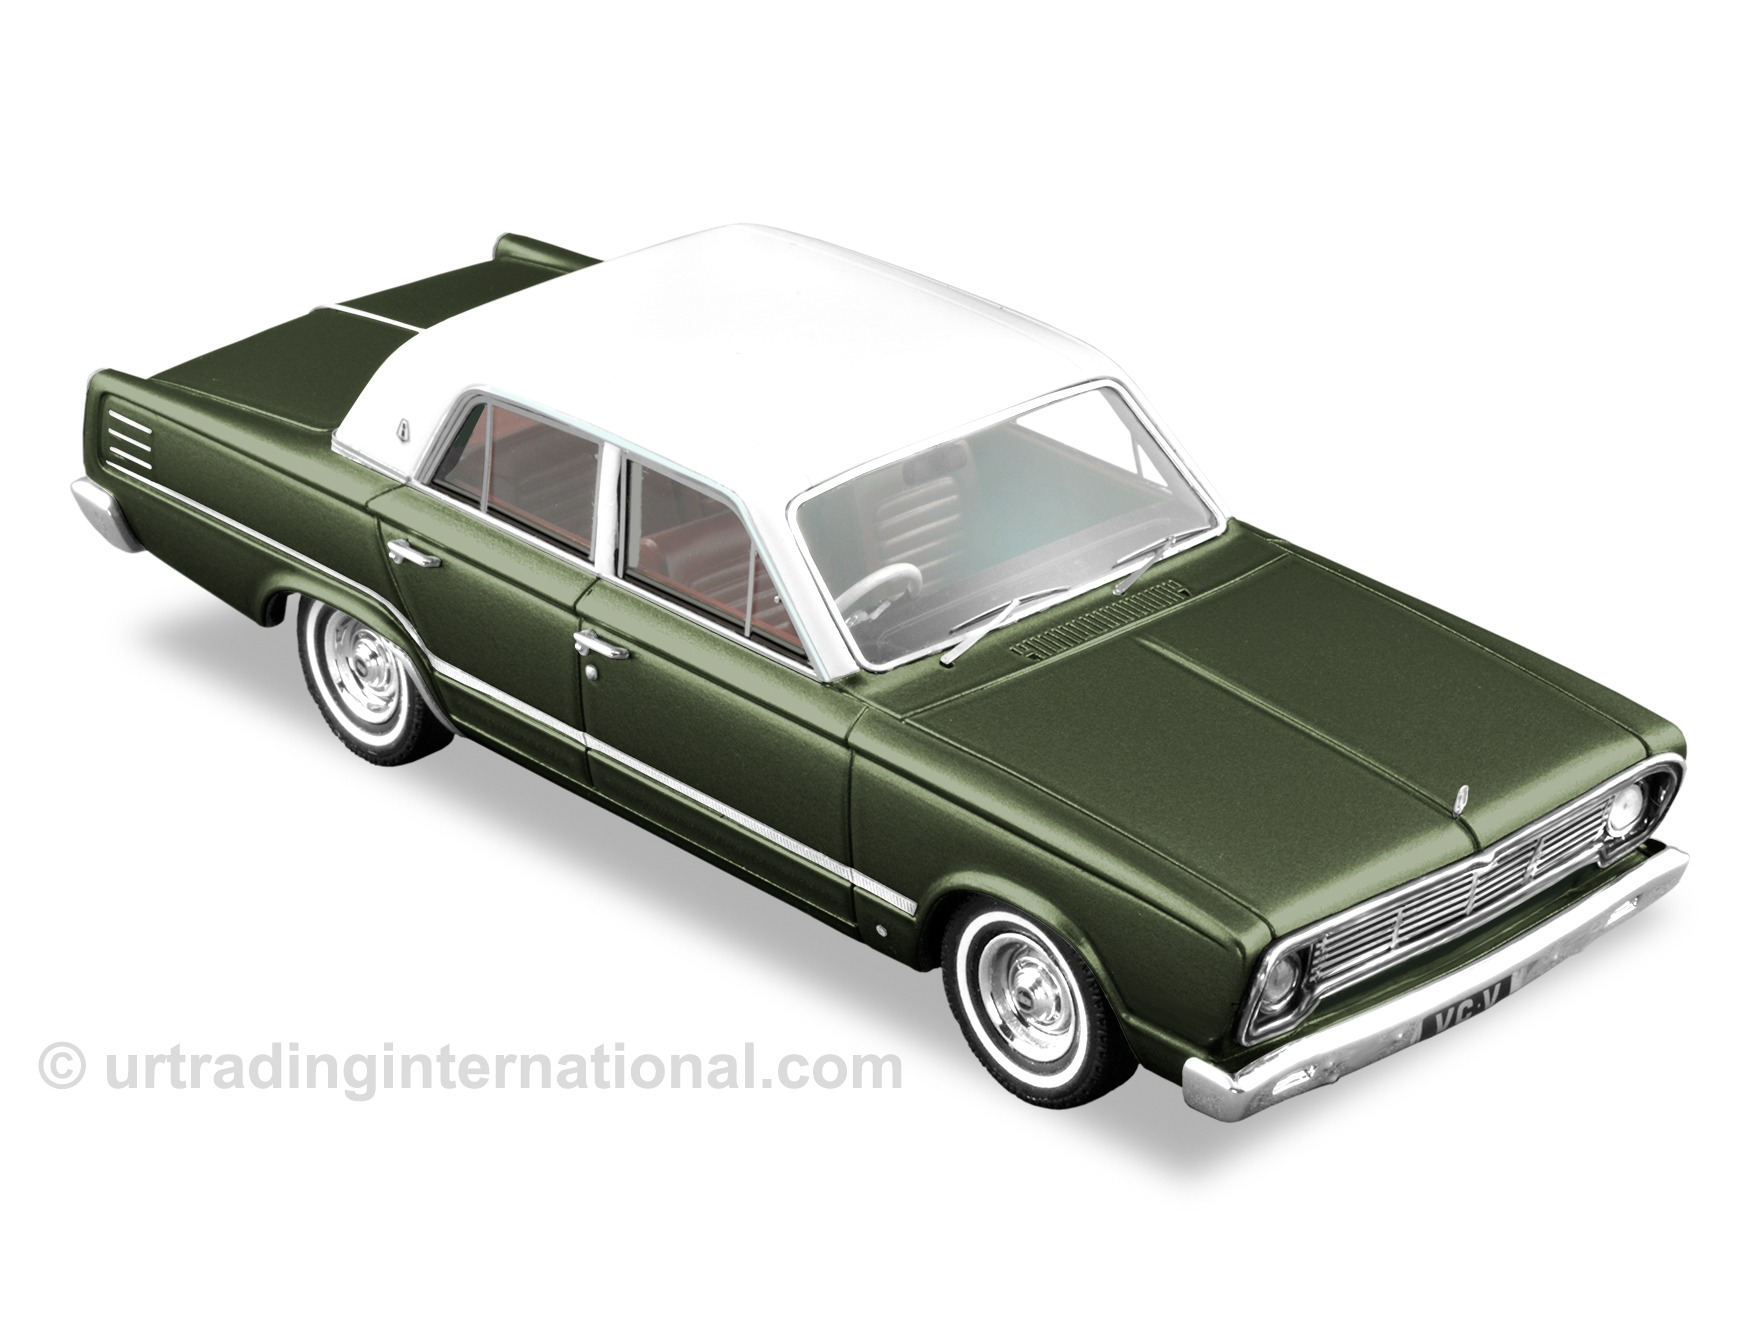 1967 VC Valiant – Burnish Olive Metallic / White Roof